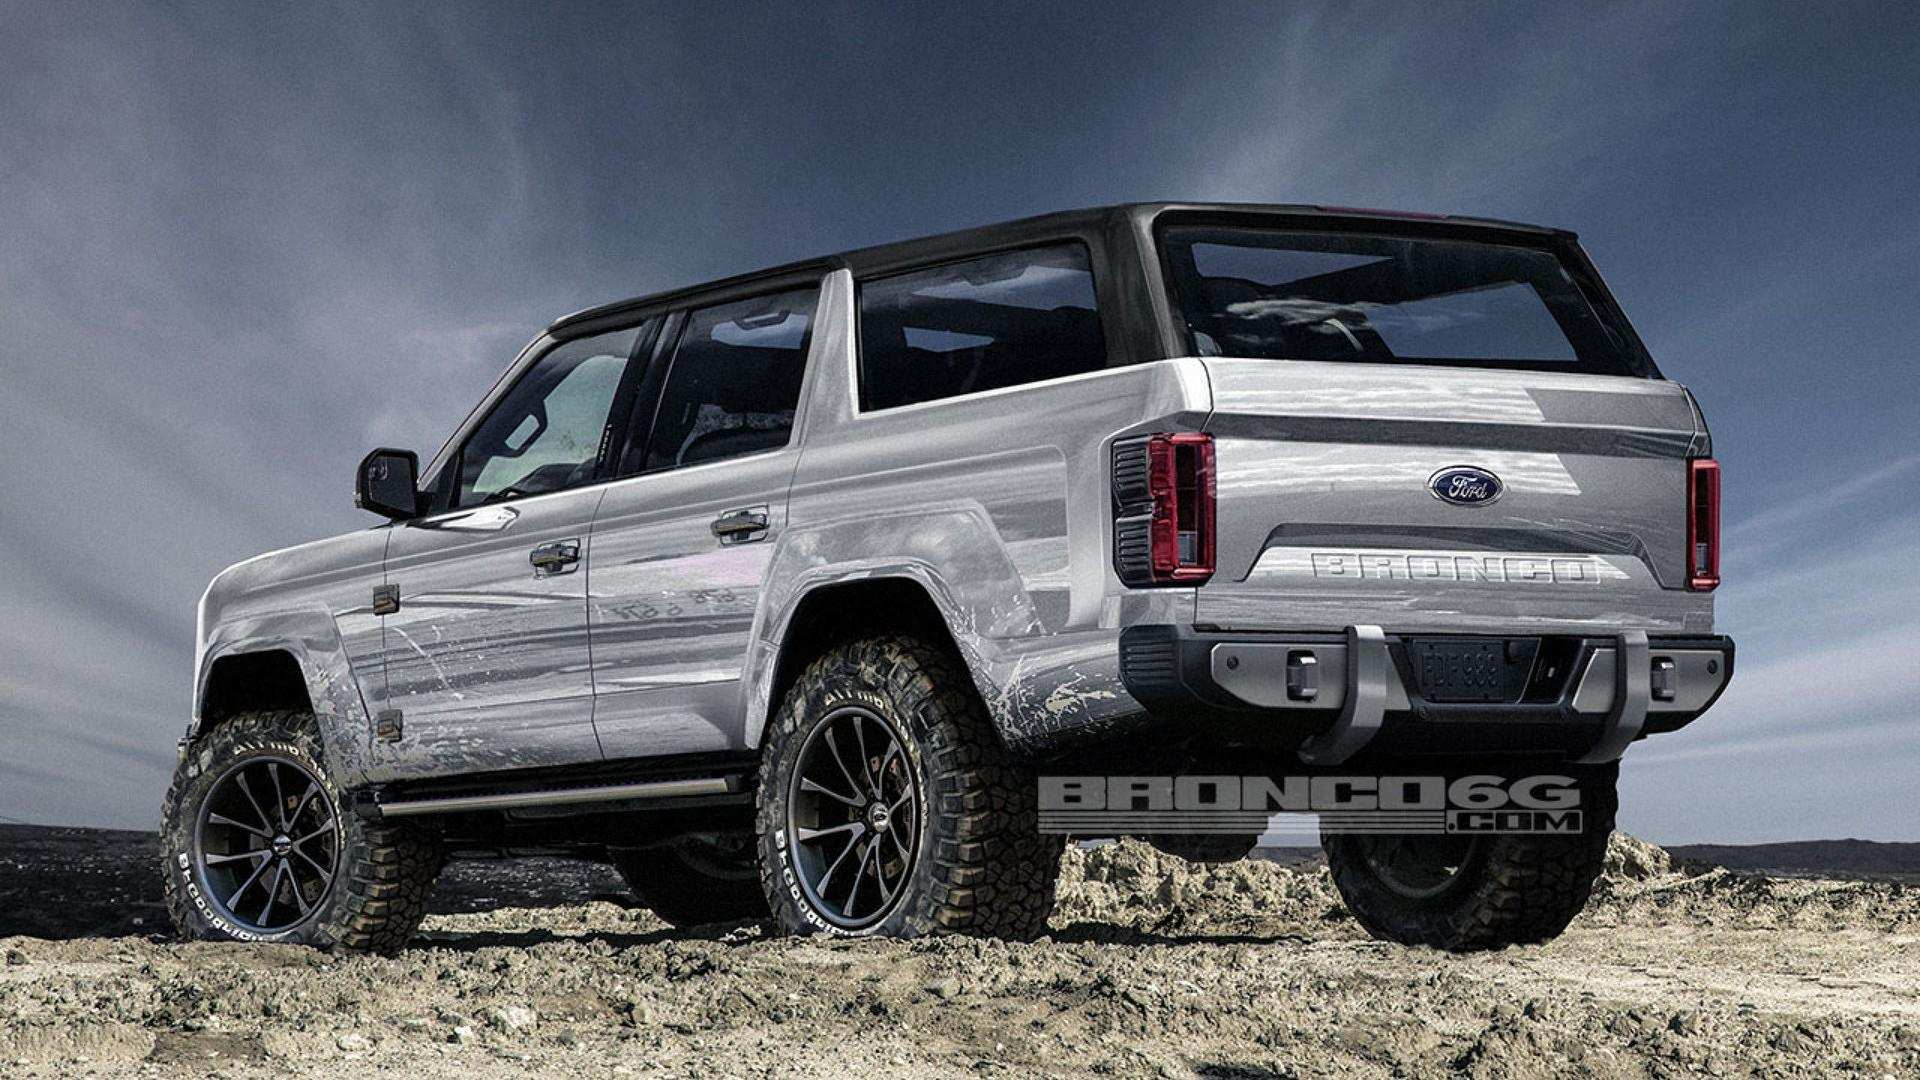 64 New 2020 Ford Bronco Msrp Pictures